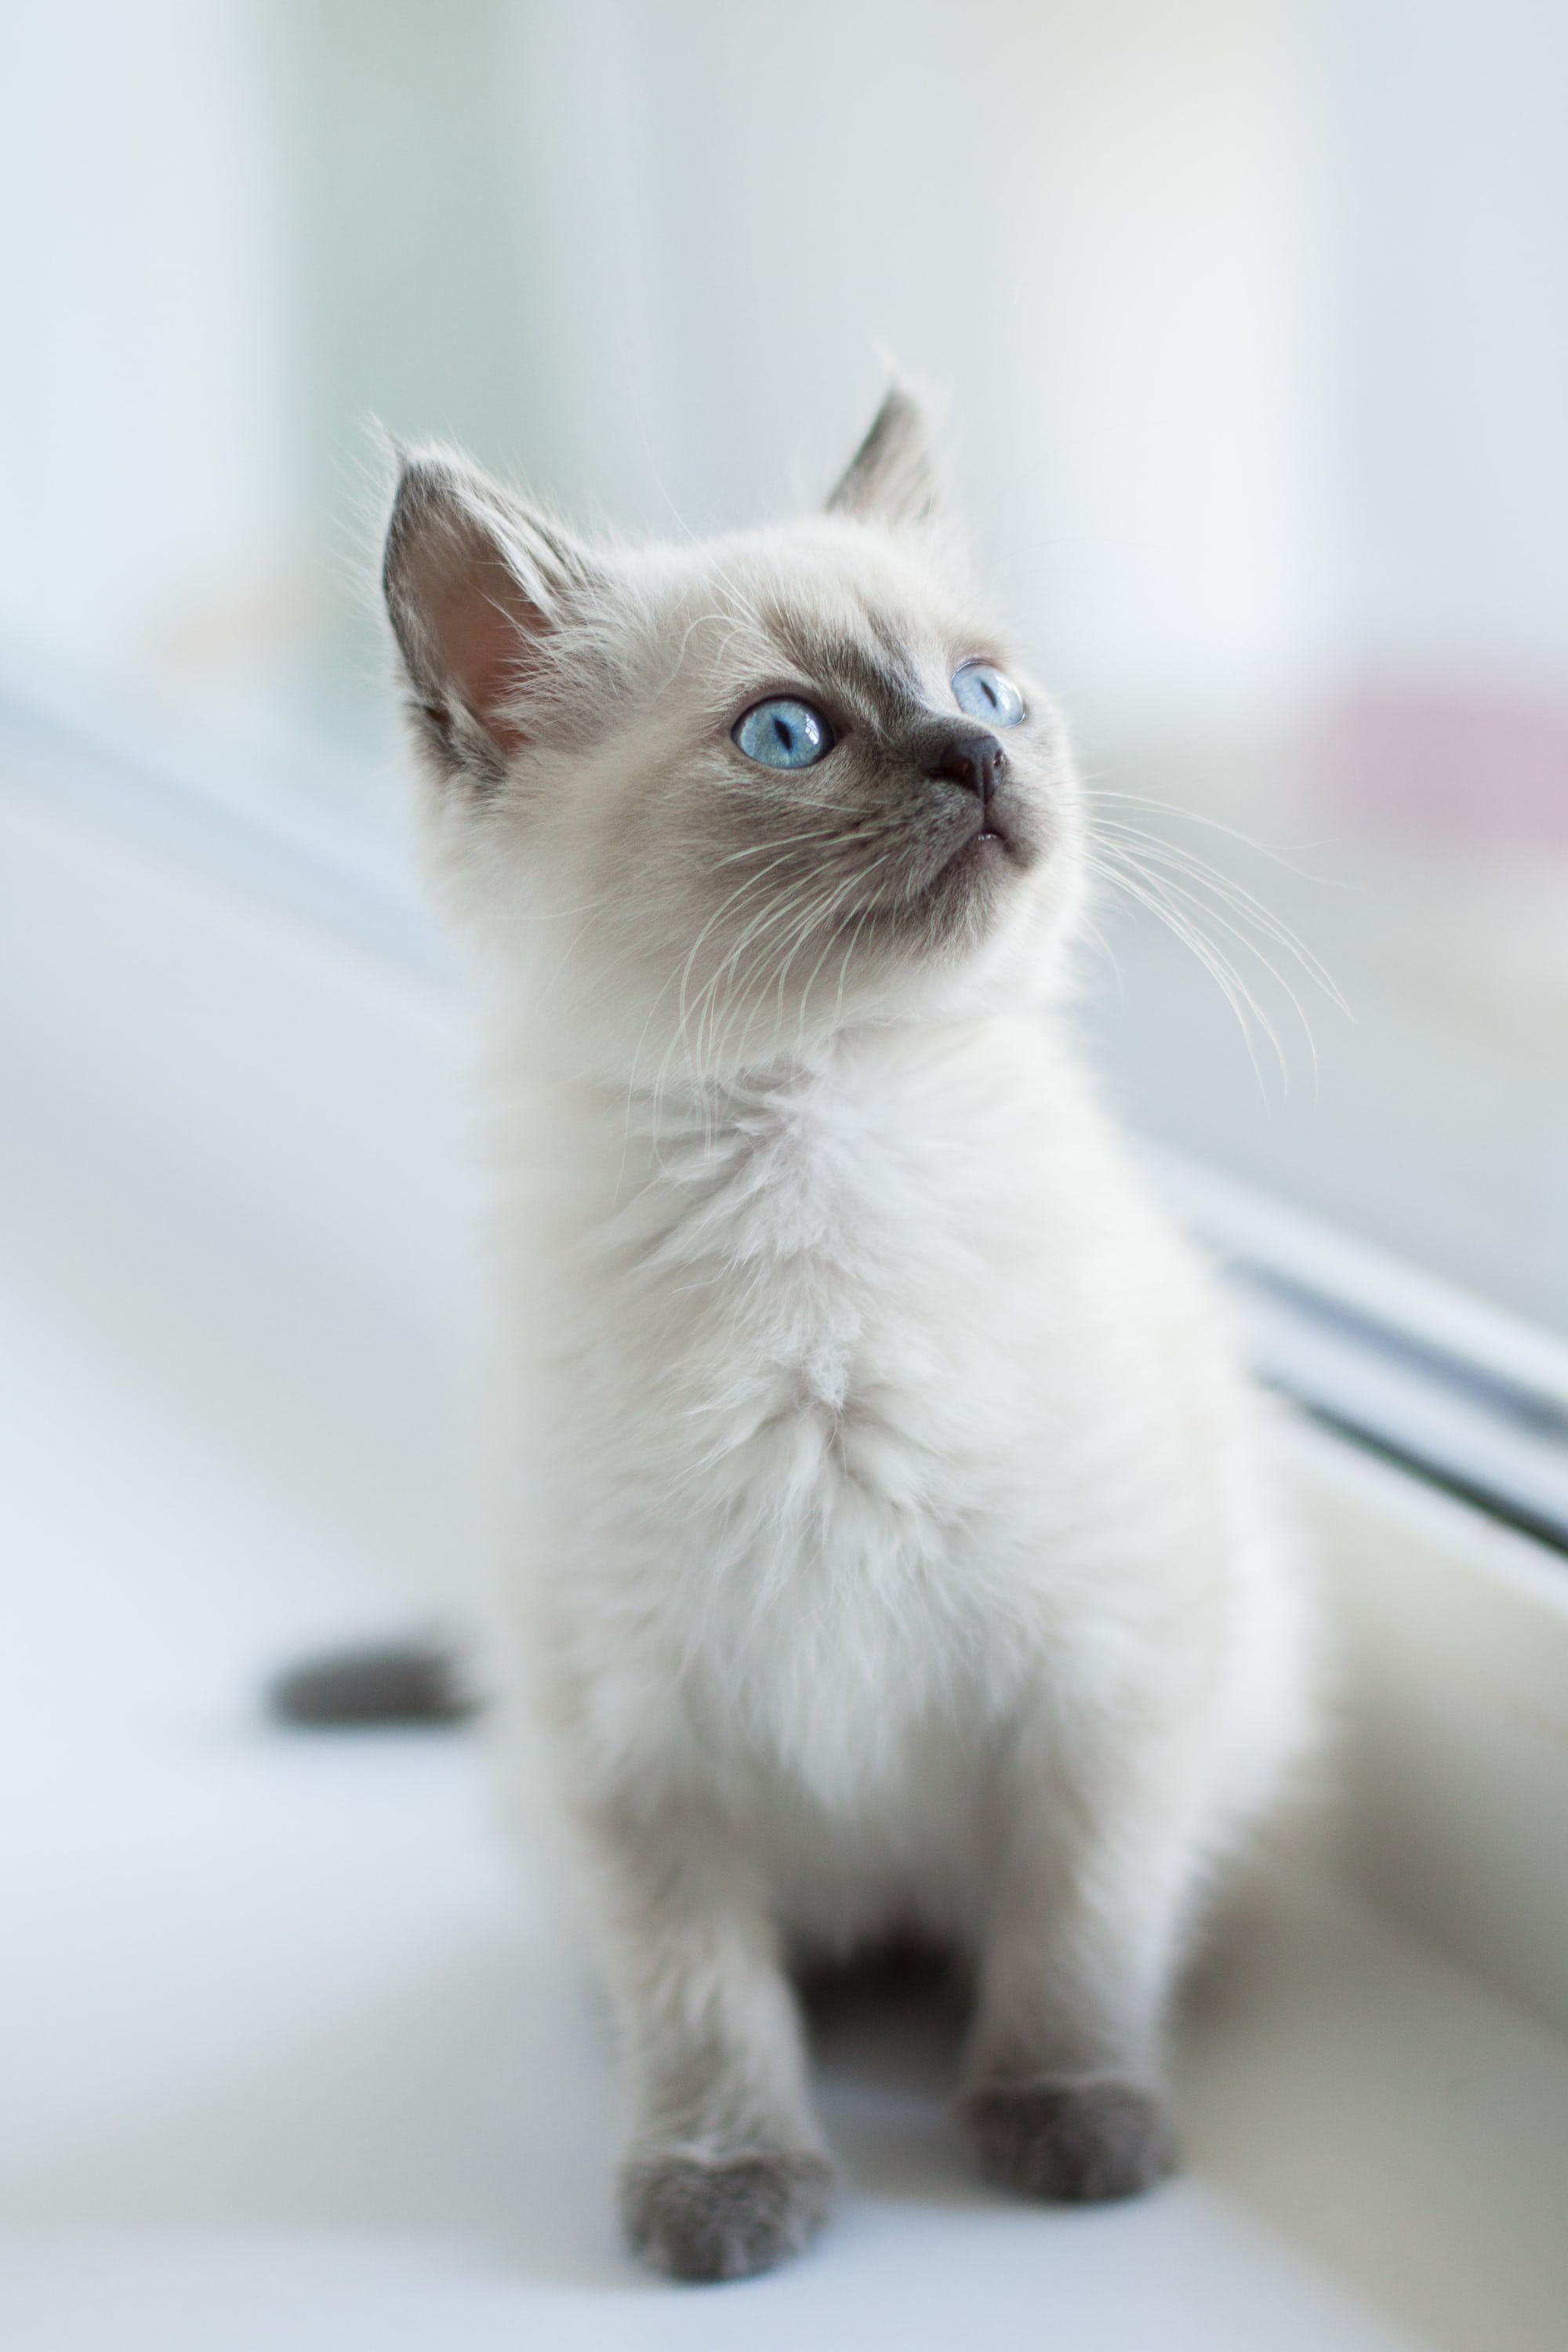 Pin By Lauren Gillies On Kitty From Dream In 2020 Cat With Blue Eyes Cat Pics Cat Lovers